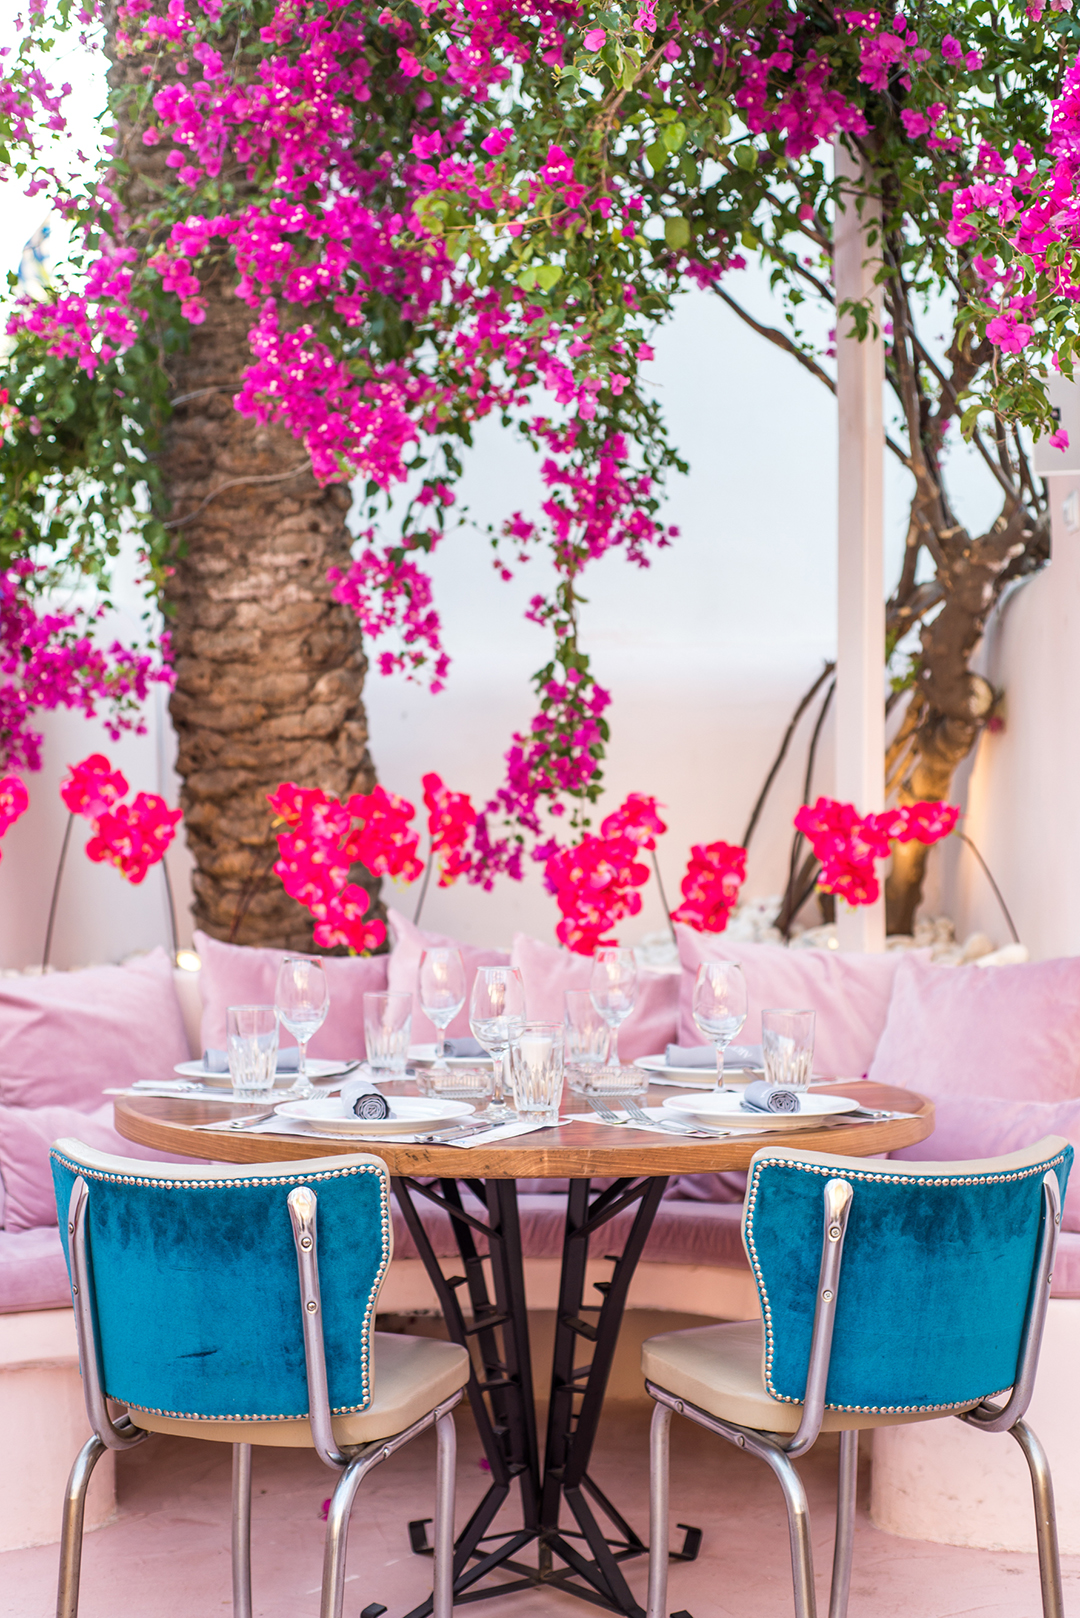 mykonos photographer chora artisanal mykonos restaurant private photographer #mykonosphotographer mykonosgreece #mykonosphotography lifestyle shooting portrait mykonos blogger photographer #bloggerphotographer mykonos food product photographer